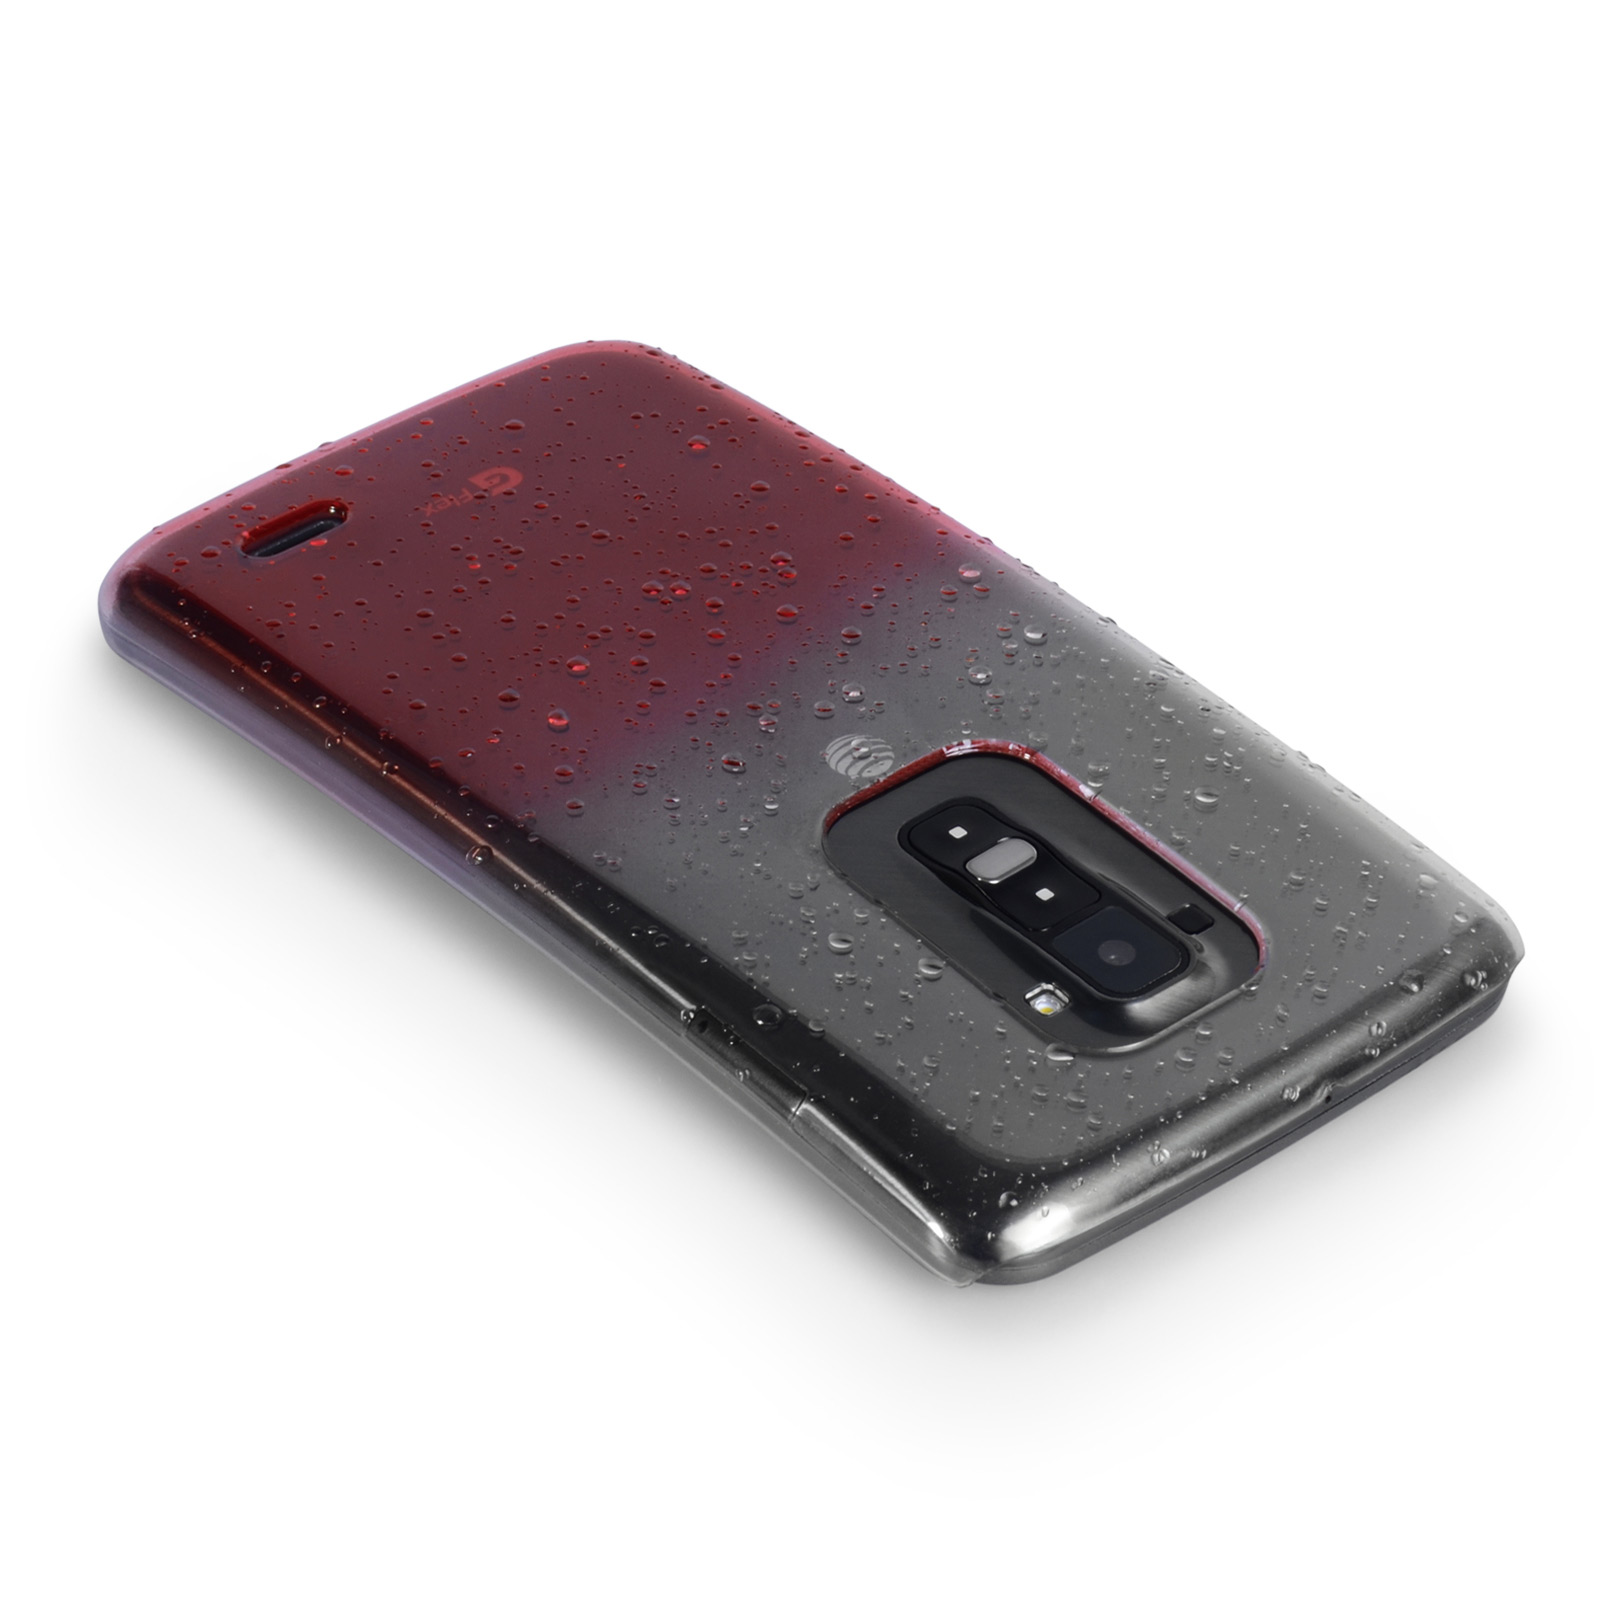 YouSave Accessories LG G Flex Raindrop Hard Case - Red-Clear